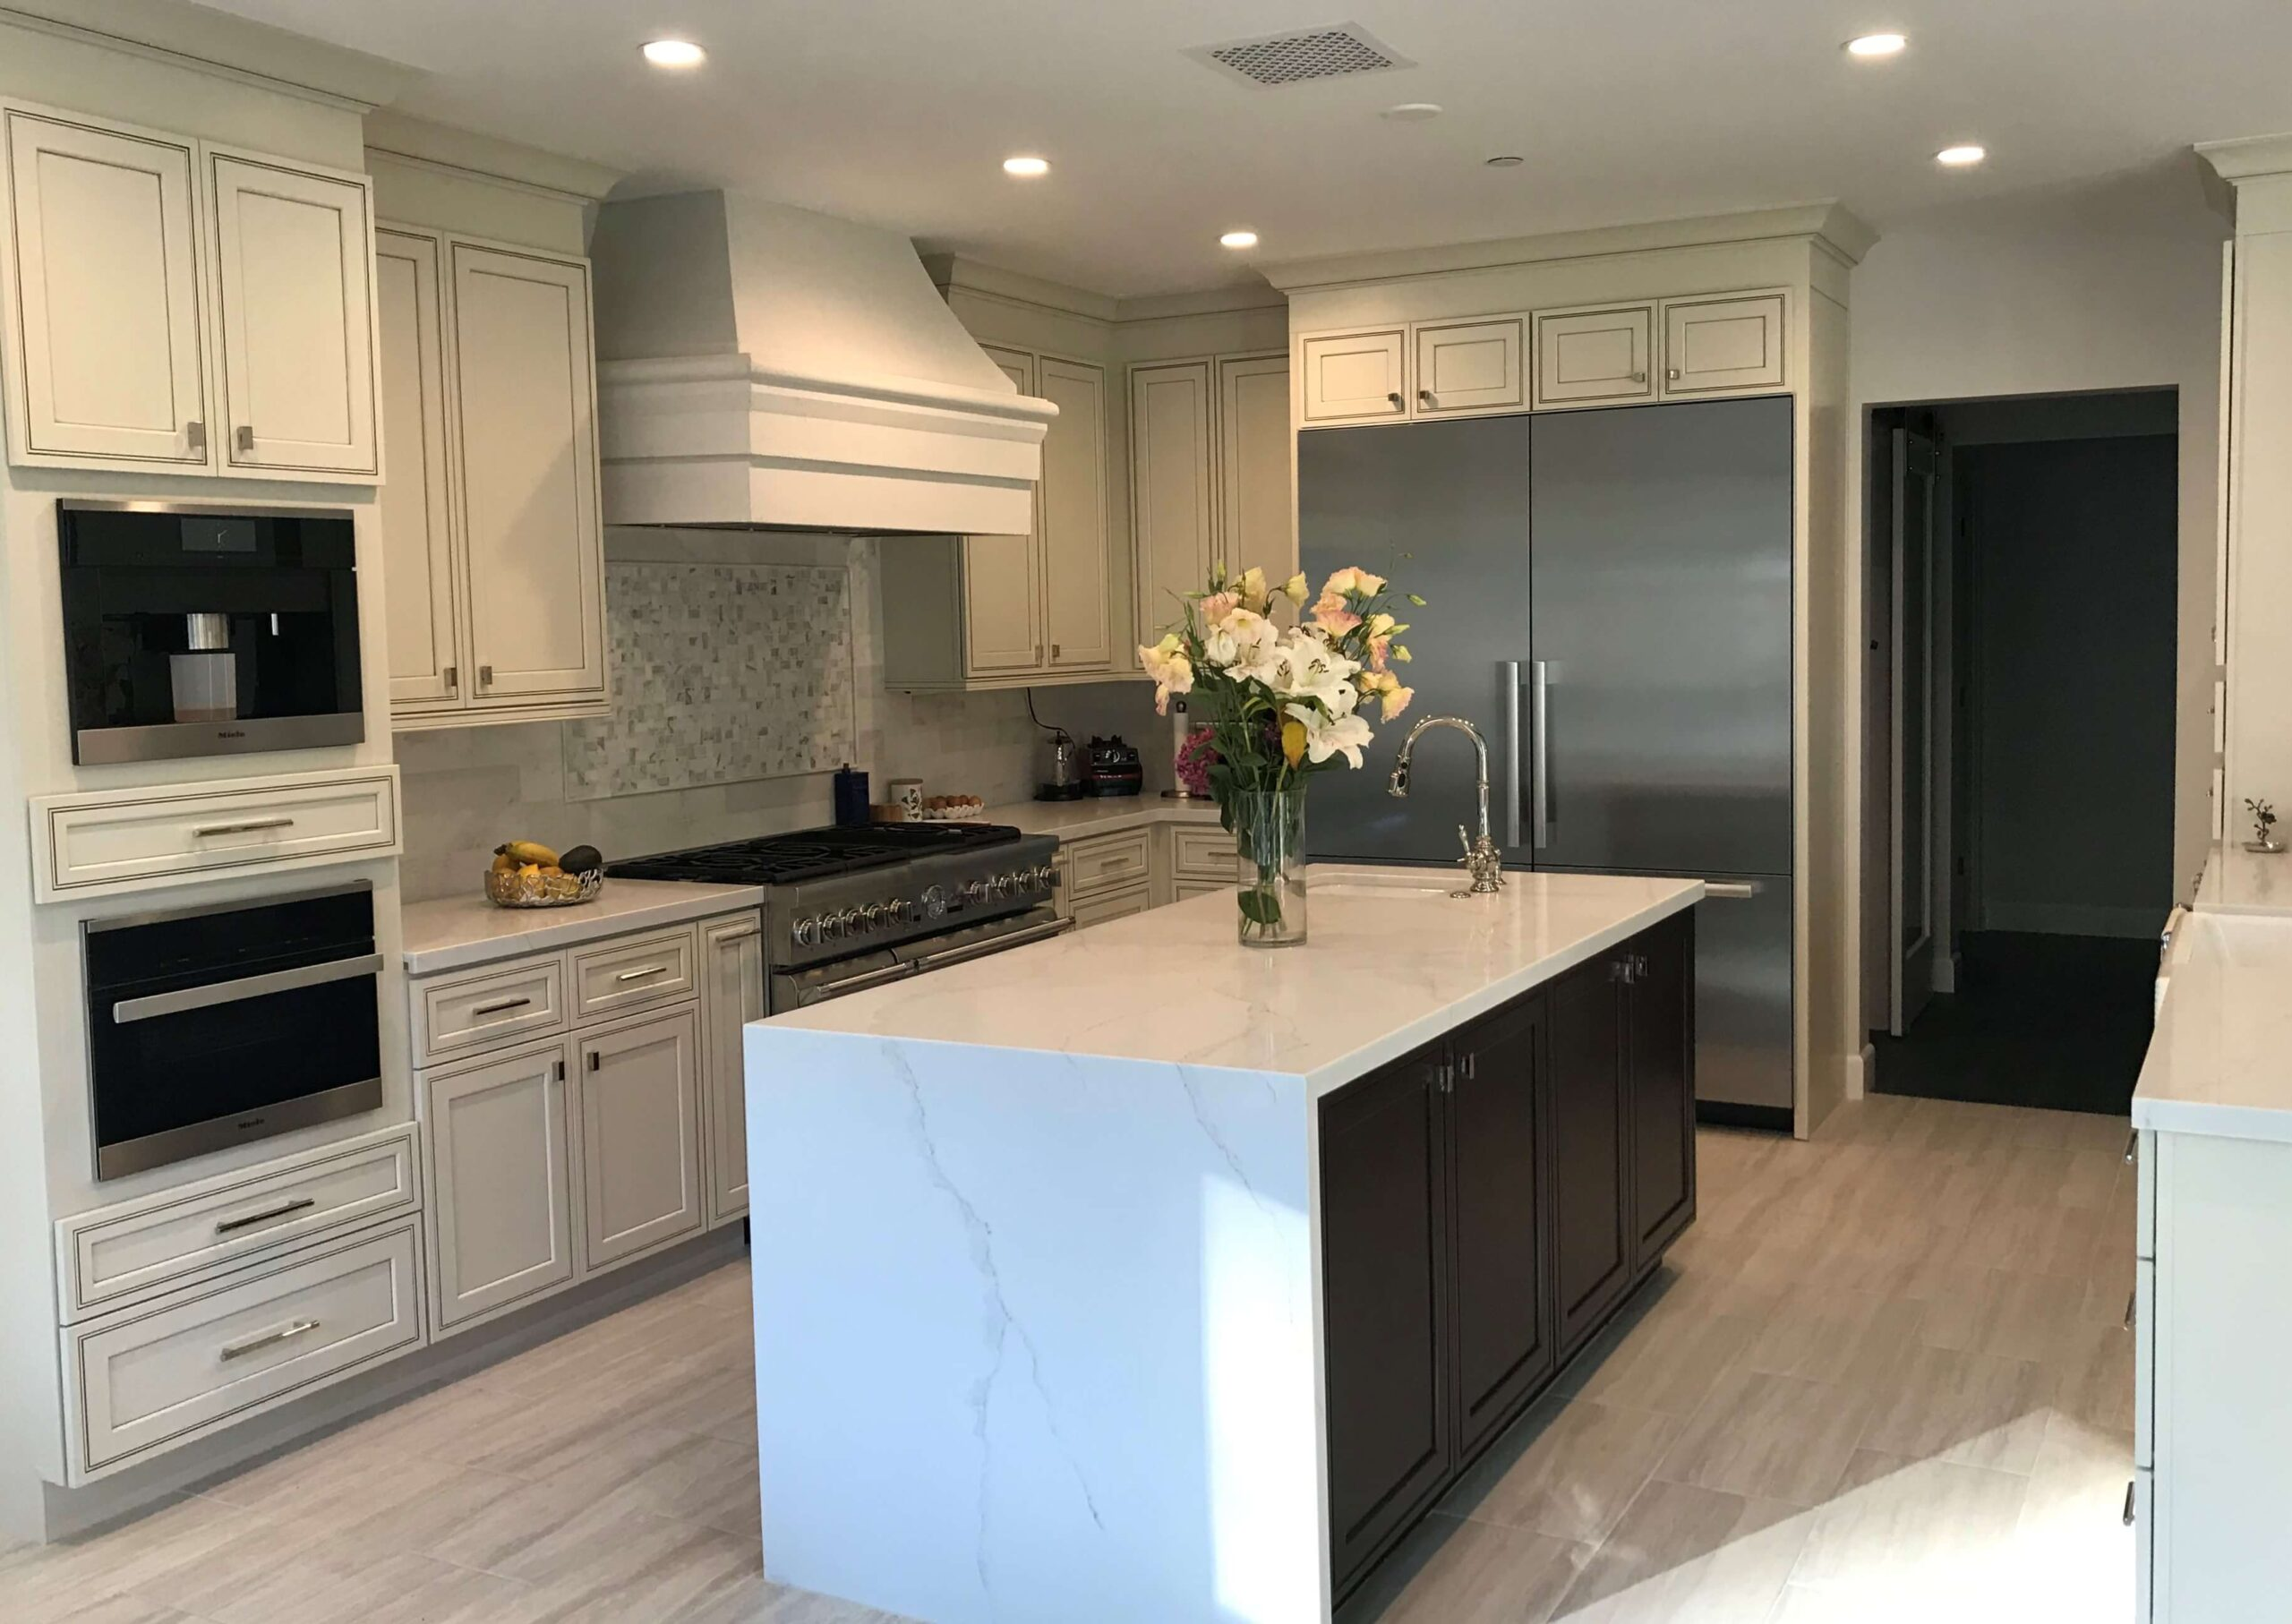 Wholesale Discount Kitchen Cabinets Chatsworth San Diego Ca